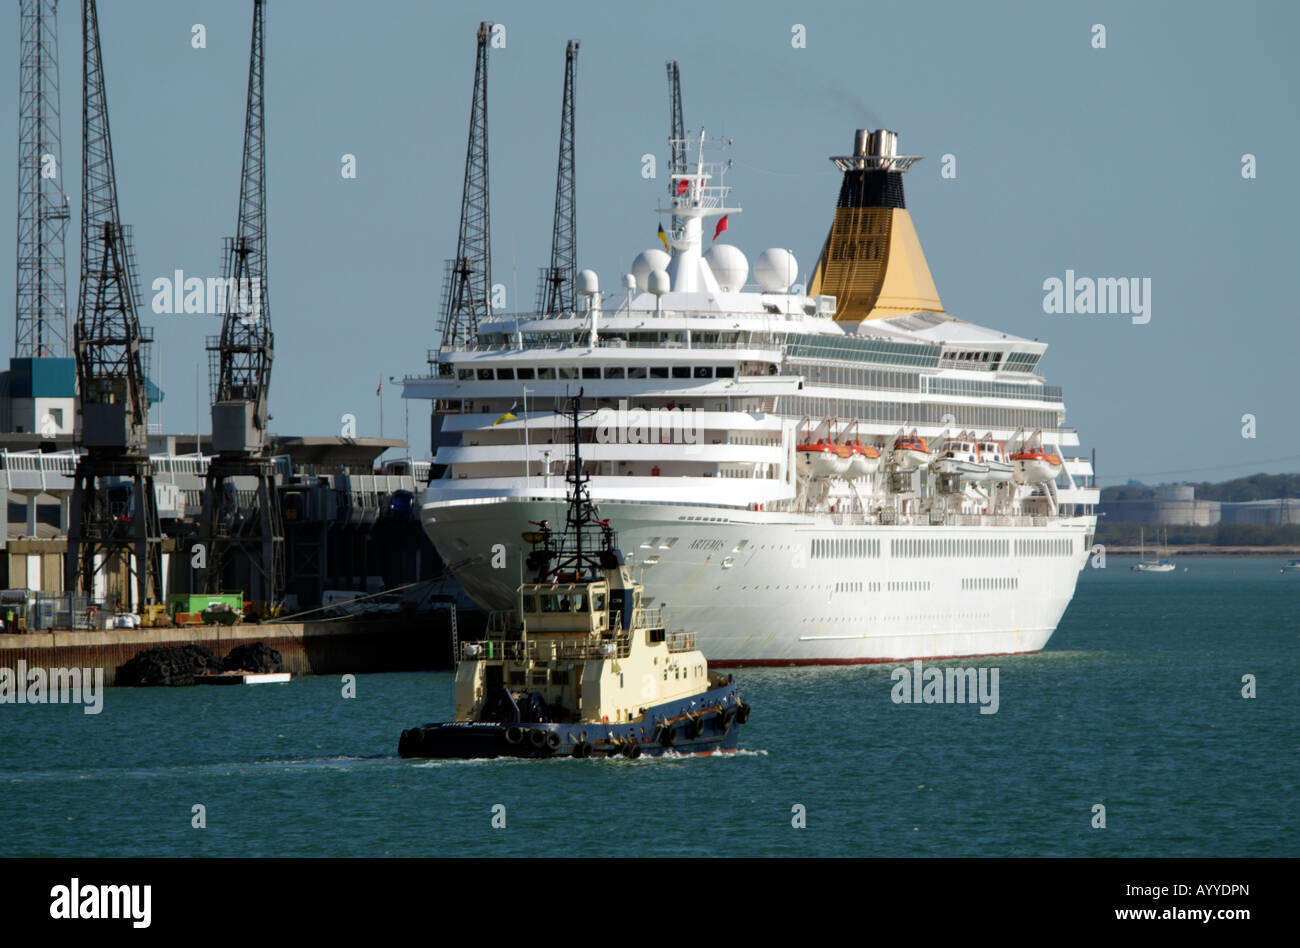 Artemis Cruise Ship Alongside on the Queen Elizabeth II Terminal in the Port of Southampton England - Stock Image